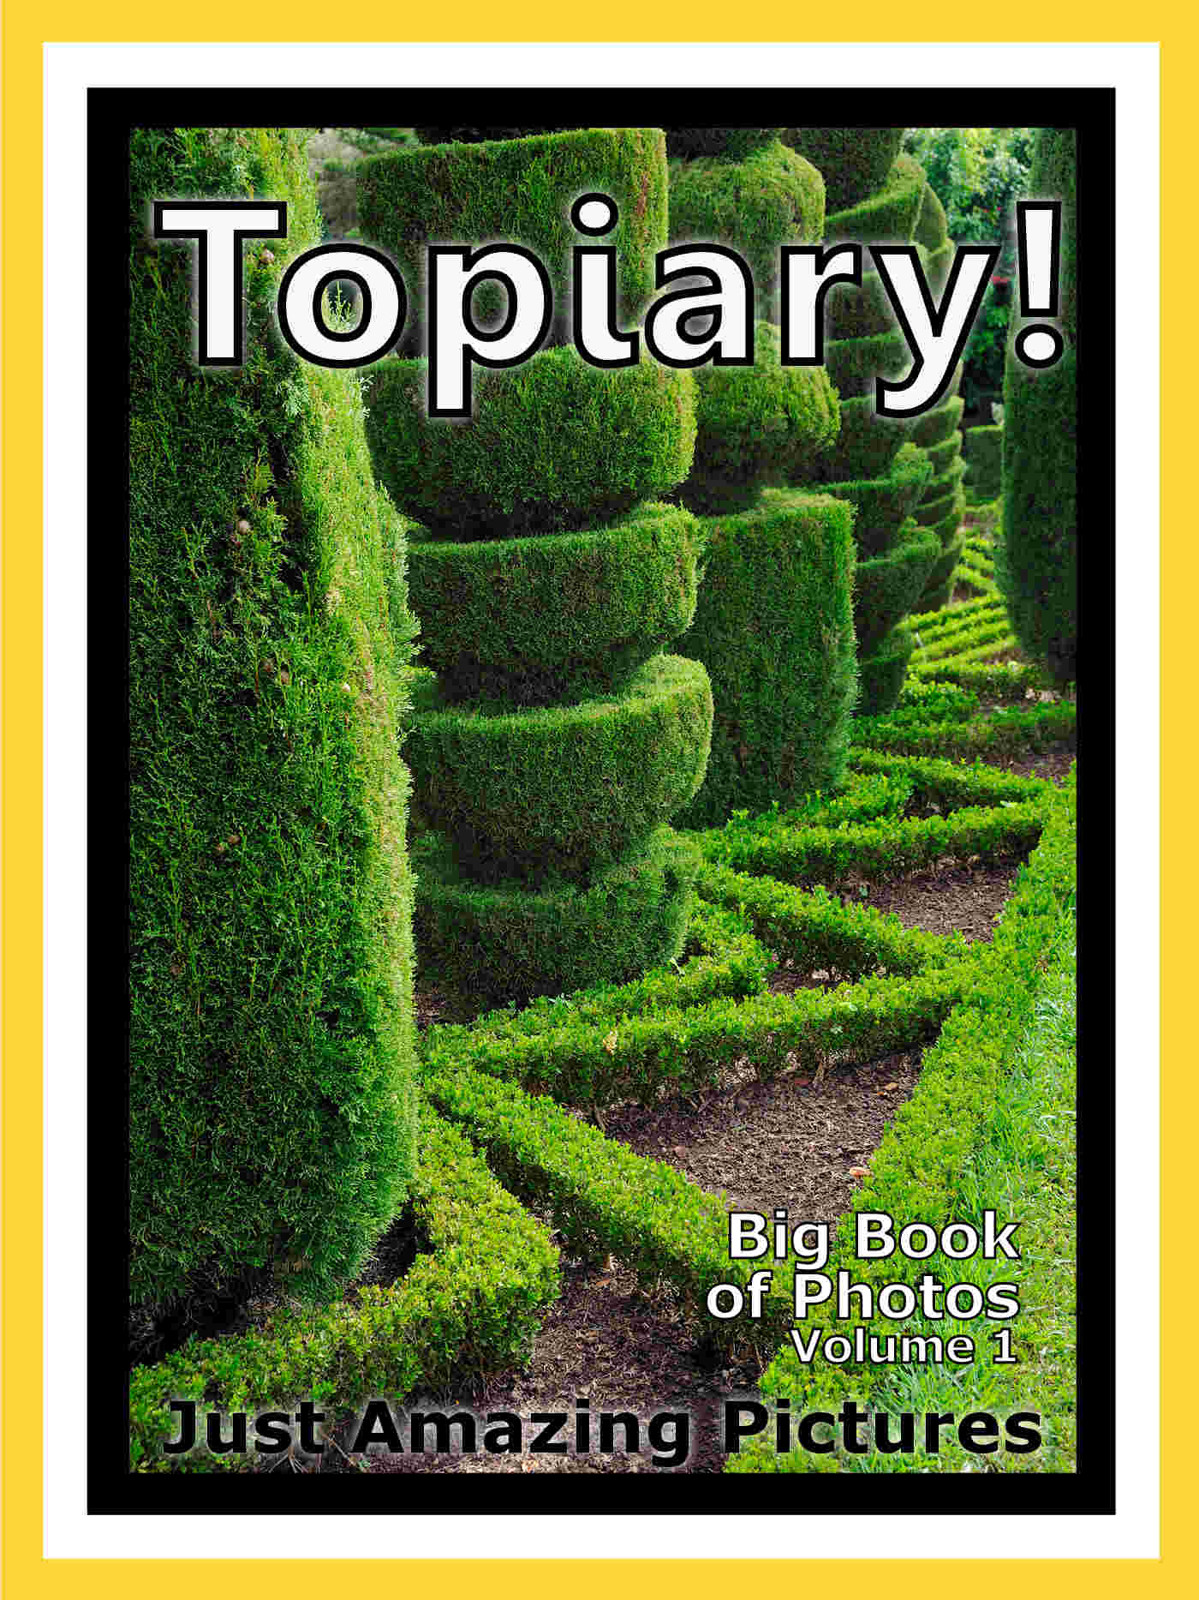 Just Topiary Photos! Big Book of Photographs & Pictures of Topiary, Vol. 1